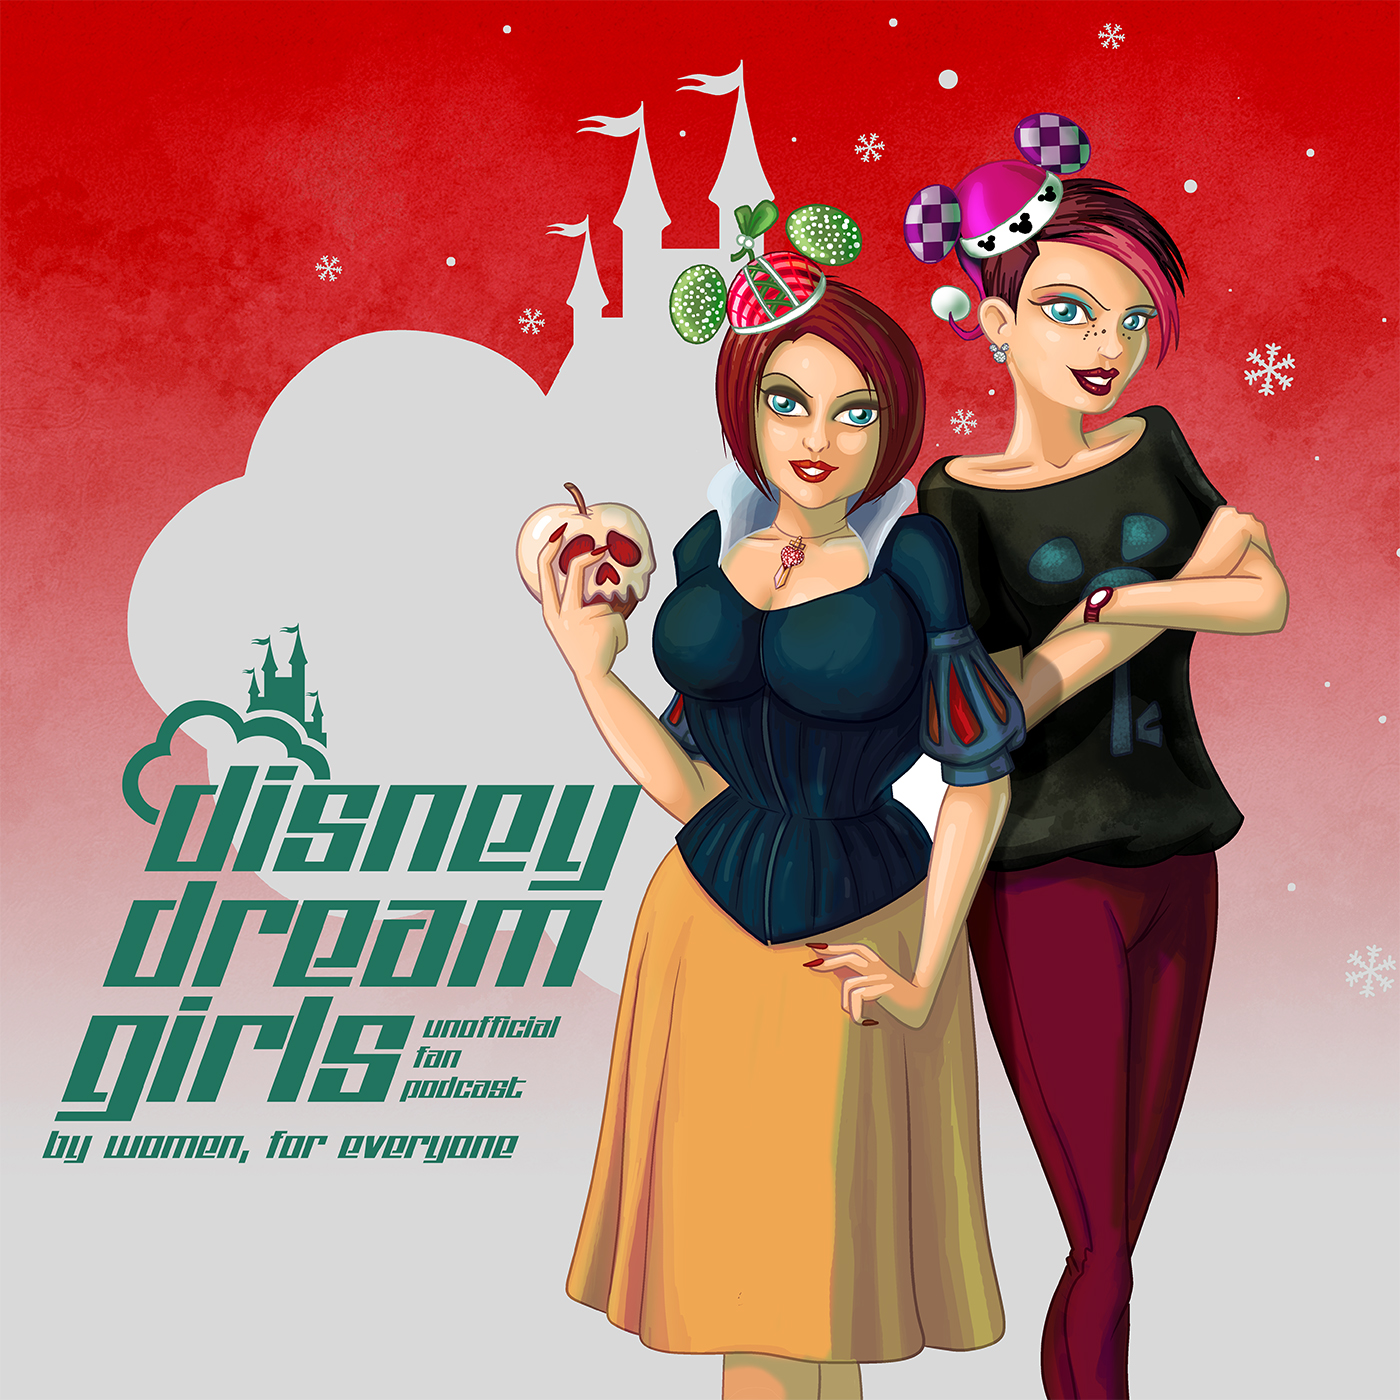 Disney Dream Girls 078 - Minxmas with Creepy Kingdom Podcast